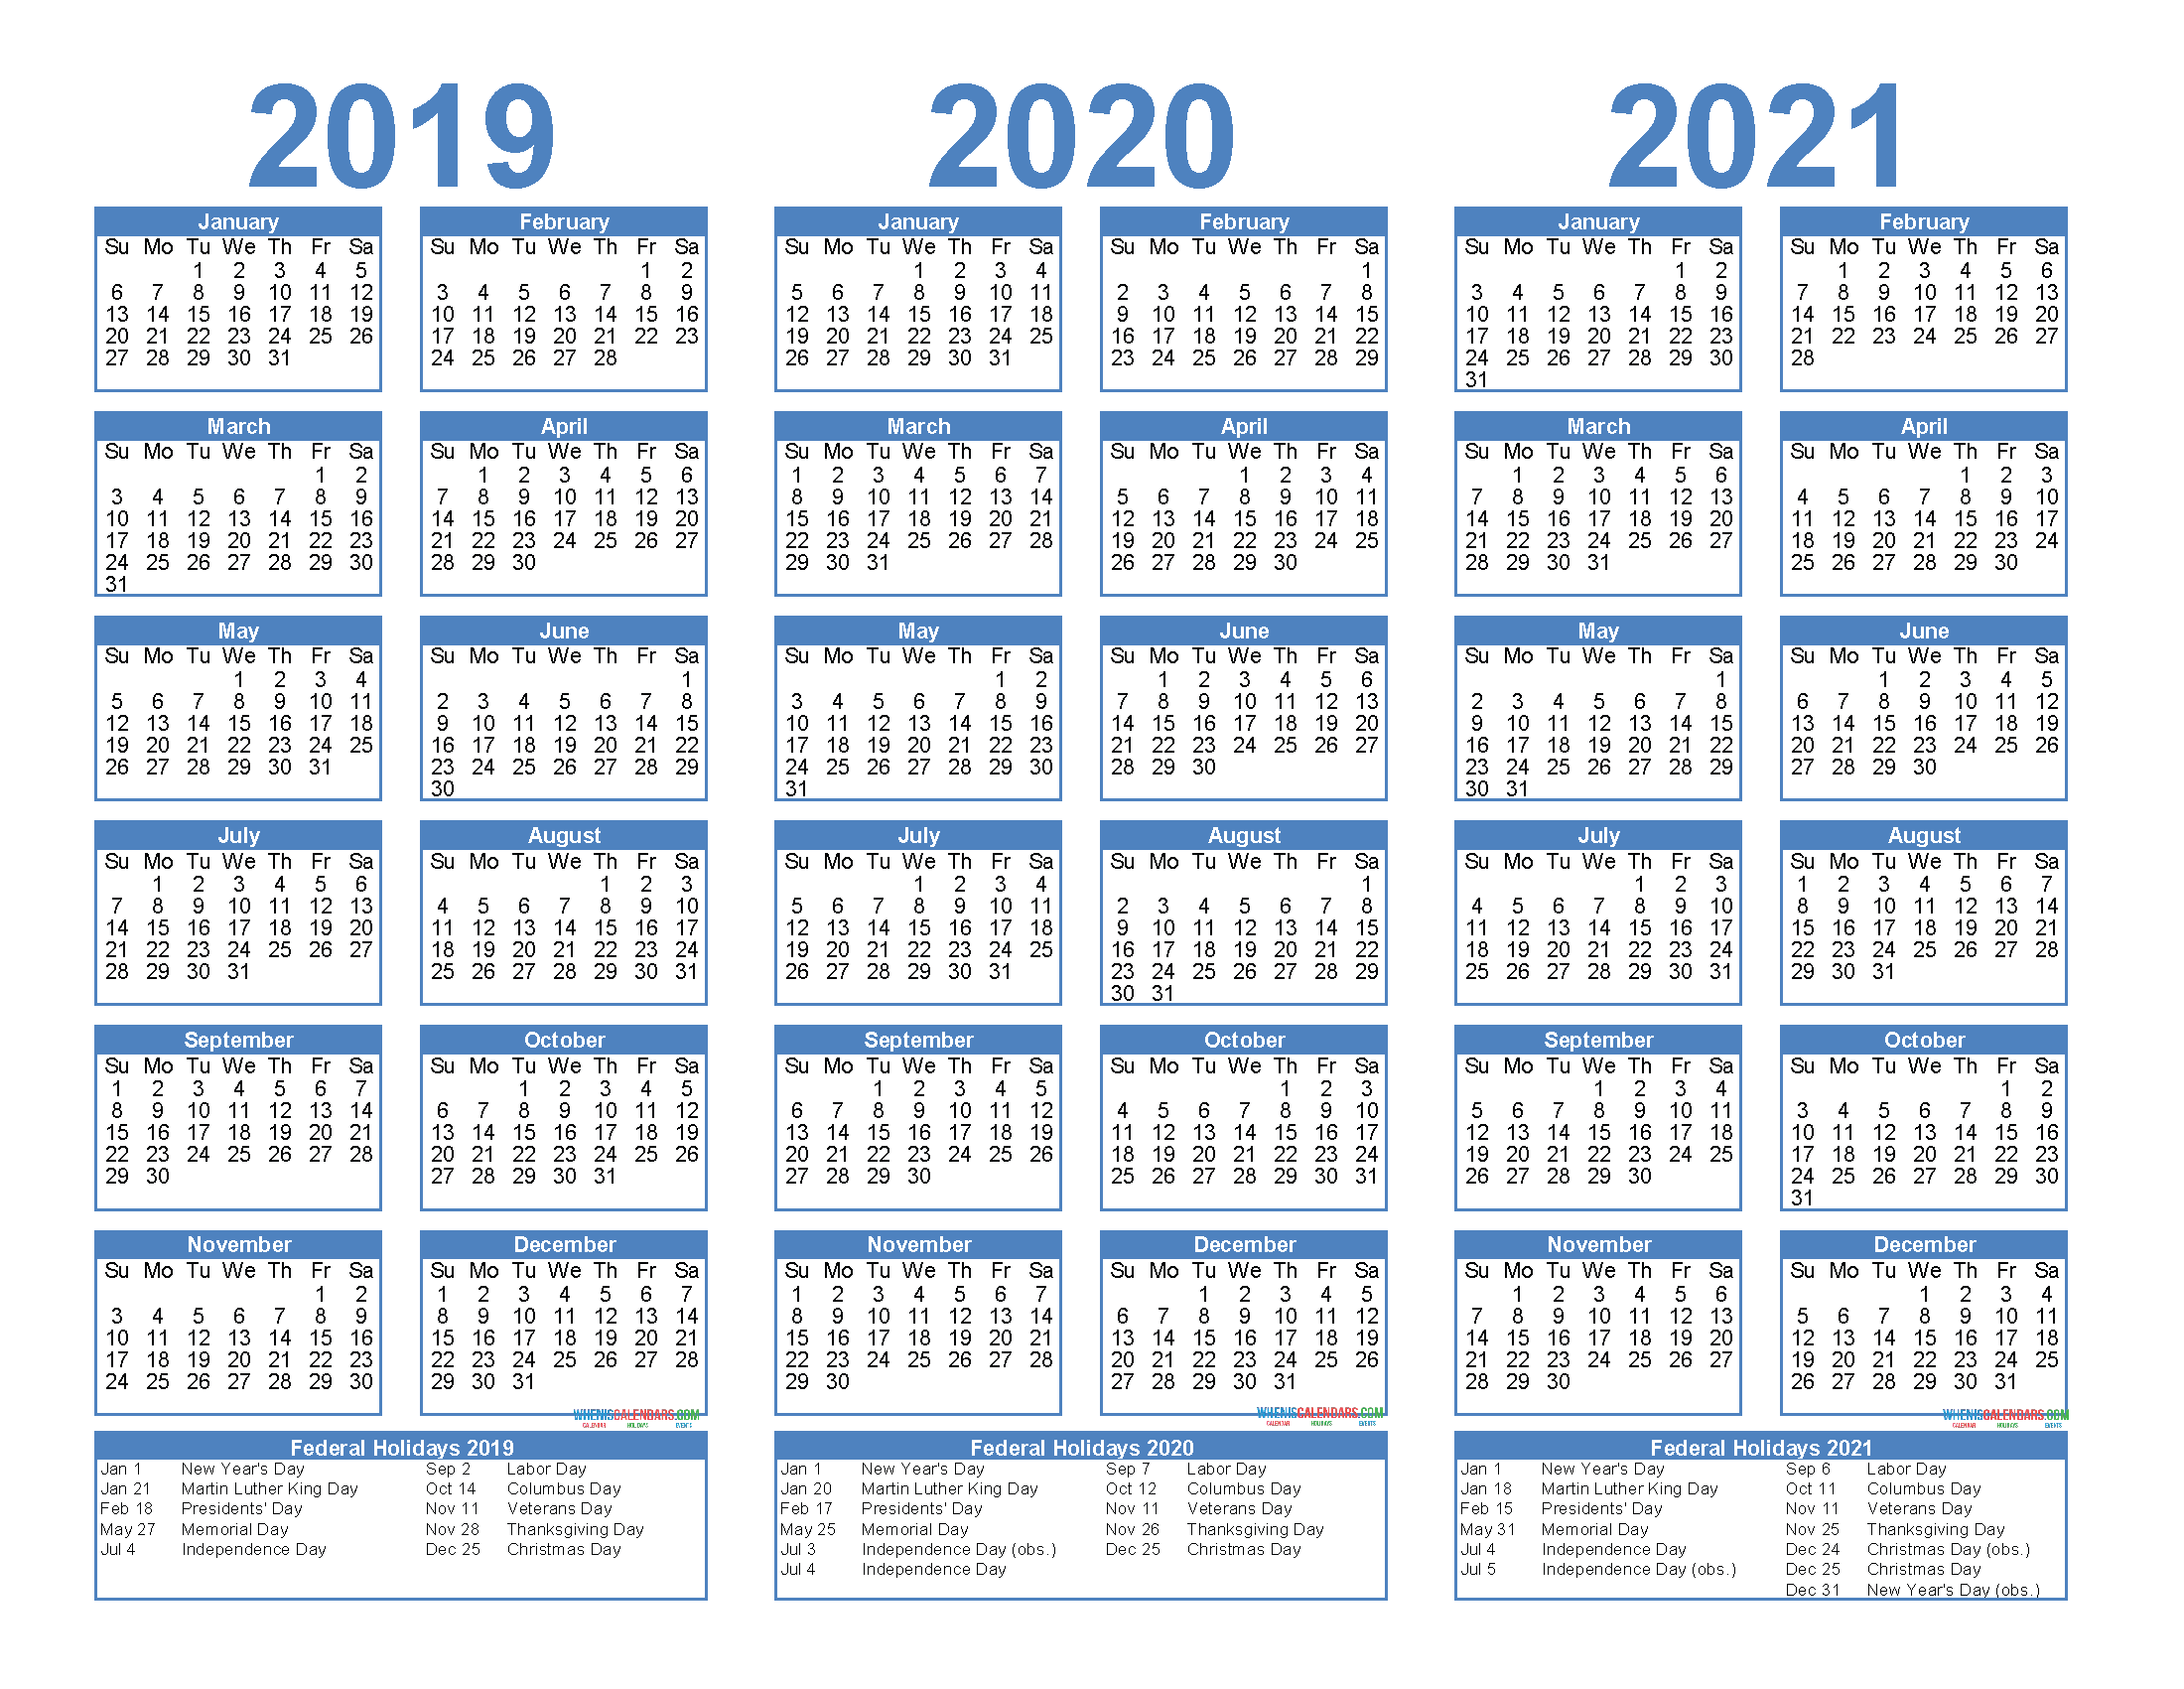 2019 to 2021 Calendar Printable Free PDF, Word, Image ...